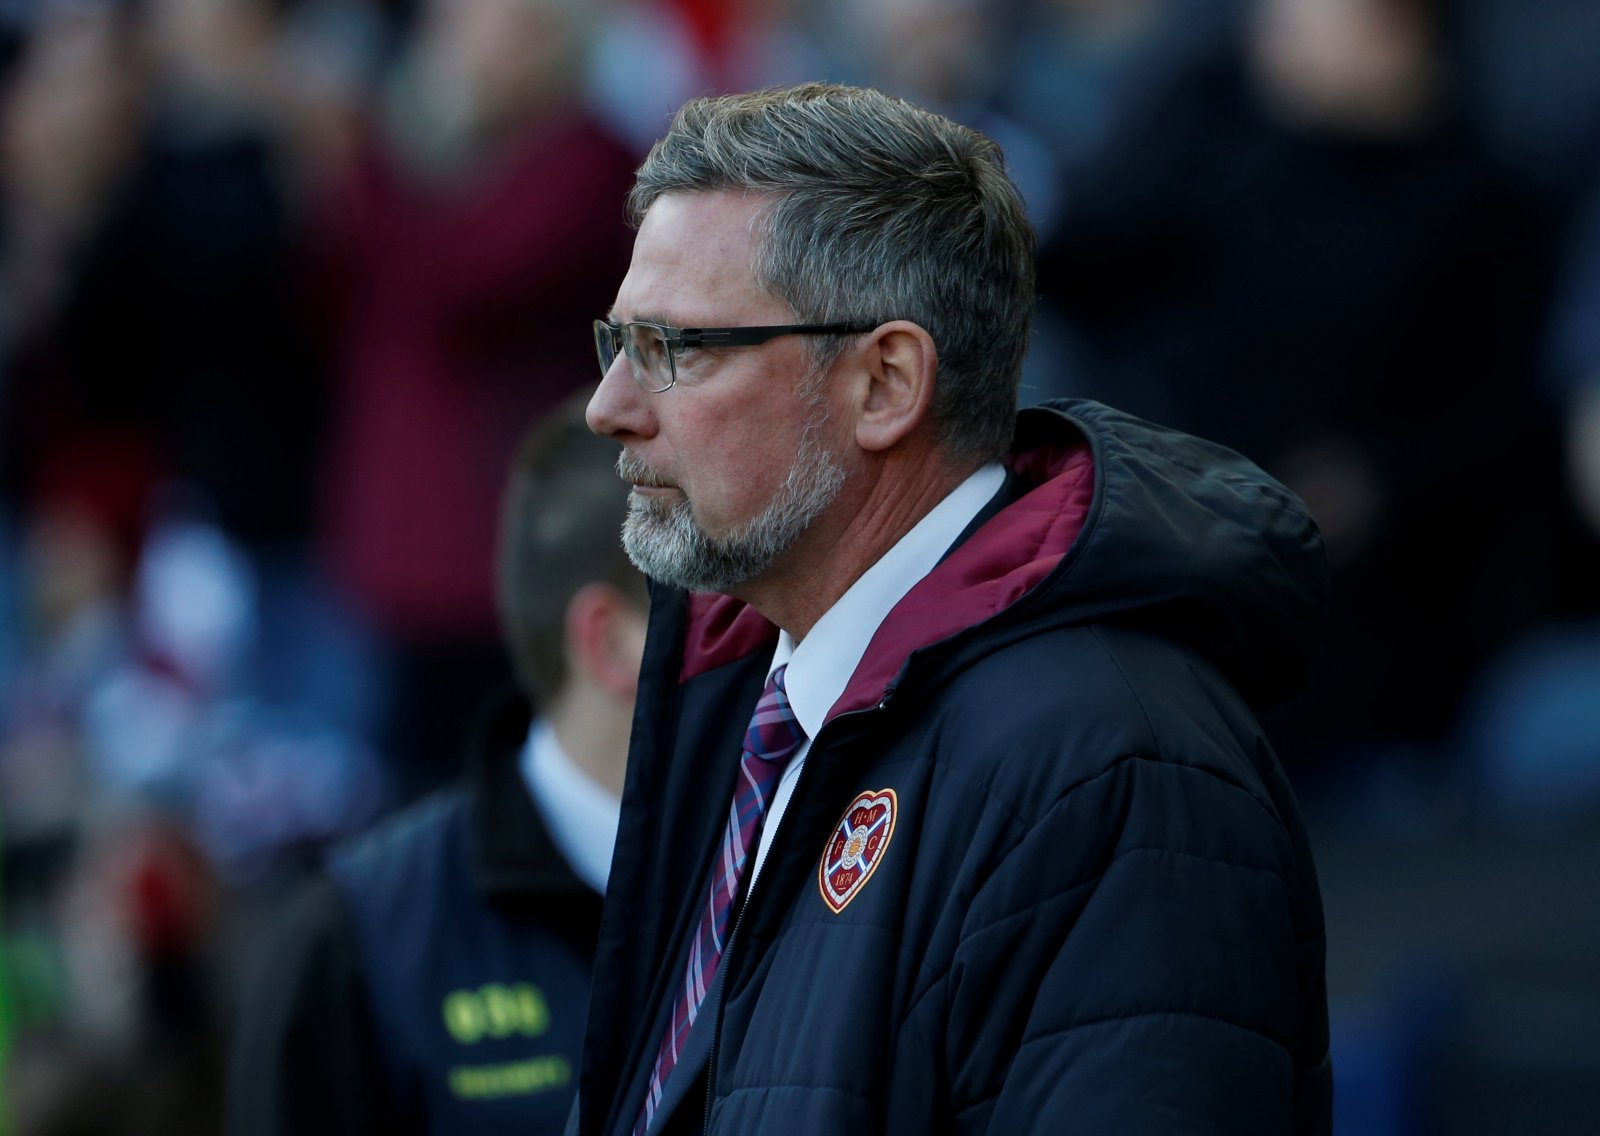 Hearts: Injury blow could derail top three finish push for Levein